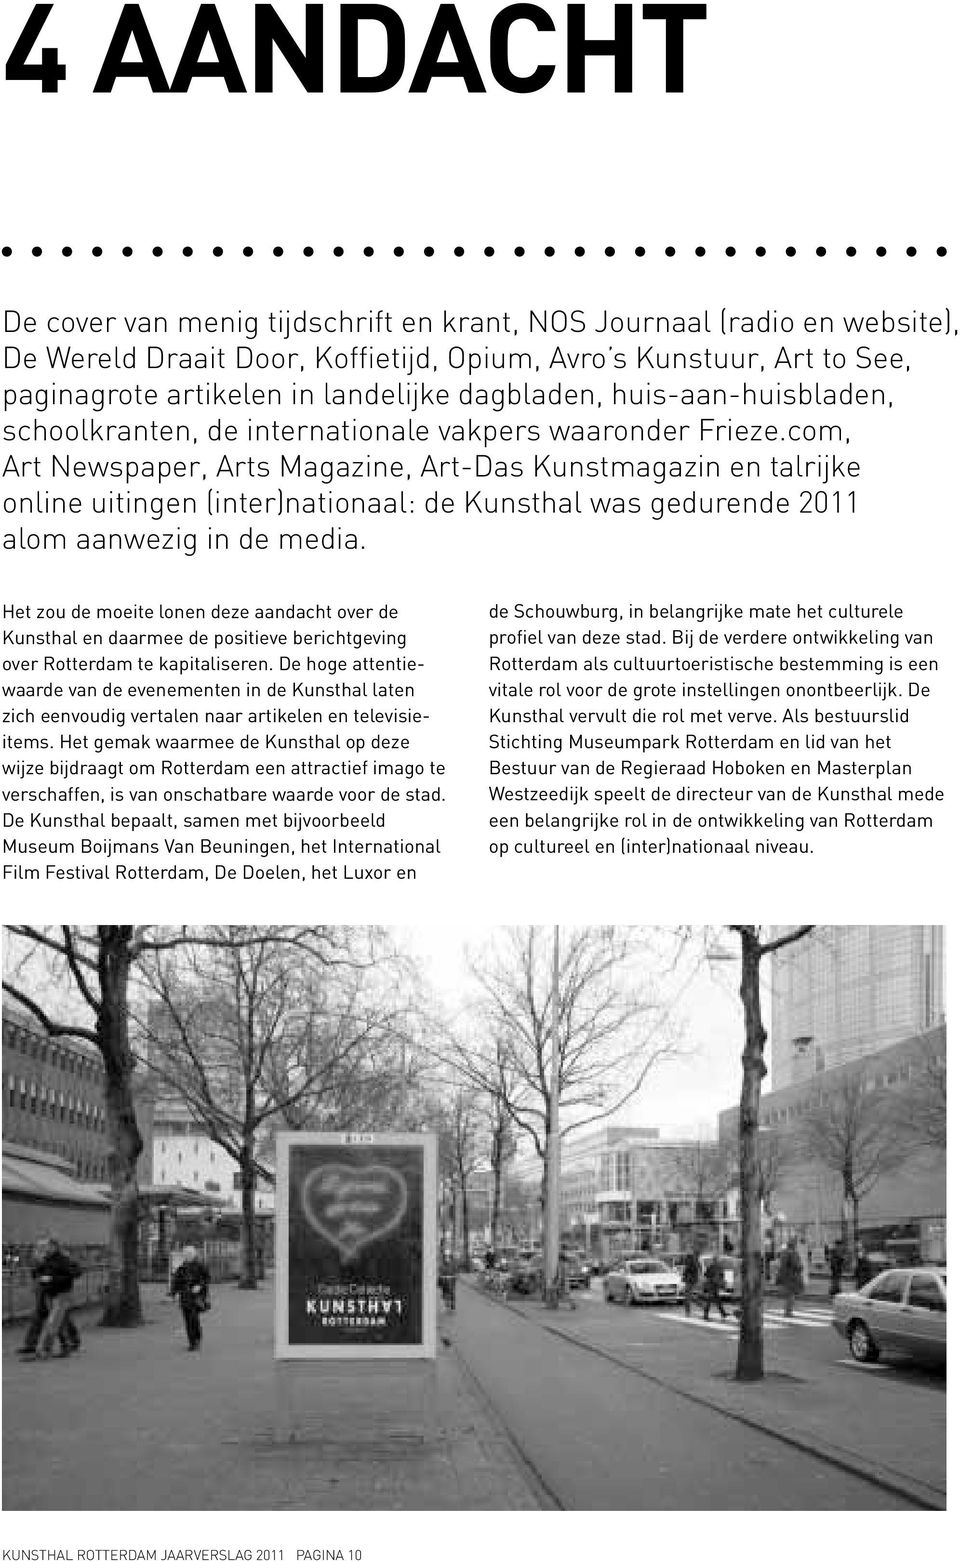 com, Art Newspaper, Arts Magazine, Art-Das Kunstmagazin en talrijke online uitingen (inter)nationaal: de Kunsthal was gedurende 2011 alom aanwezig in de media.